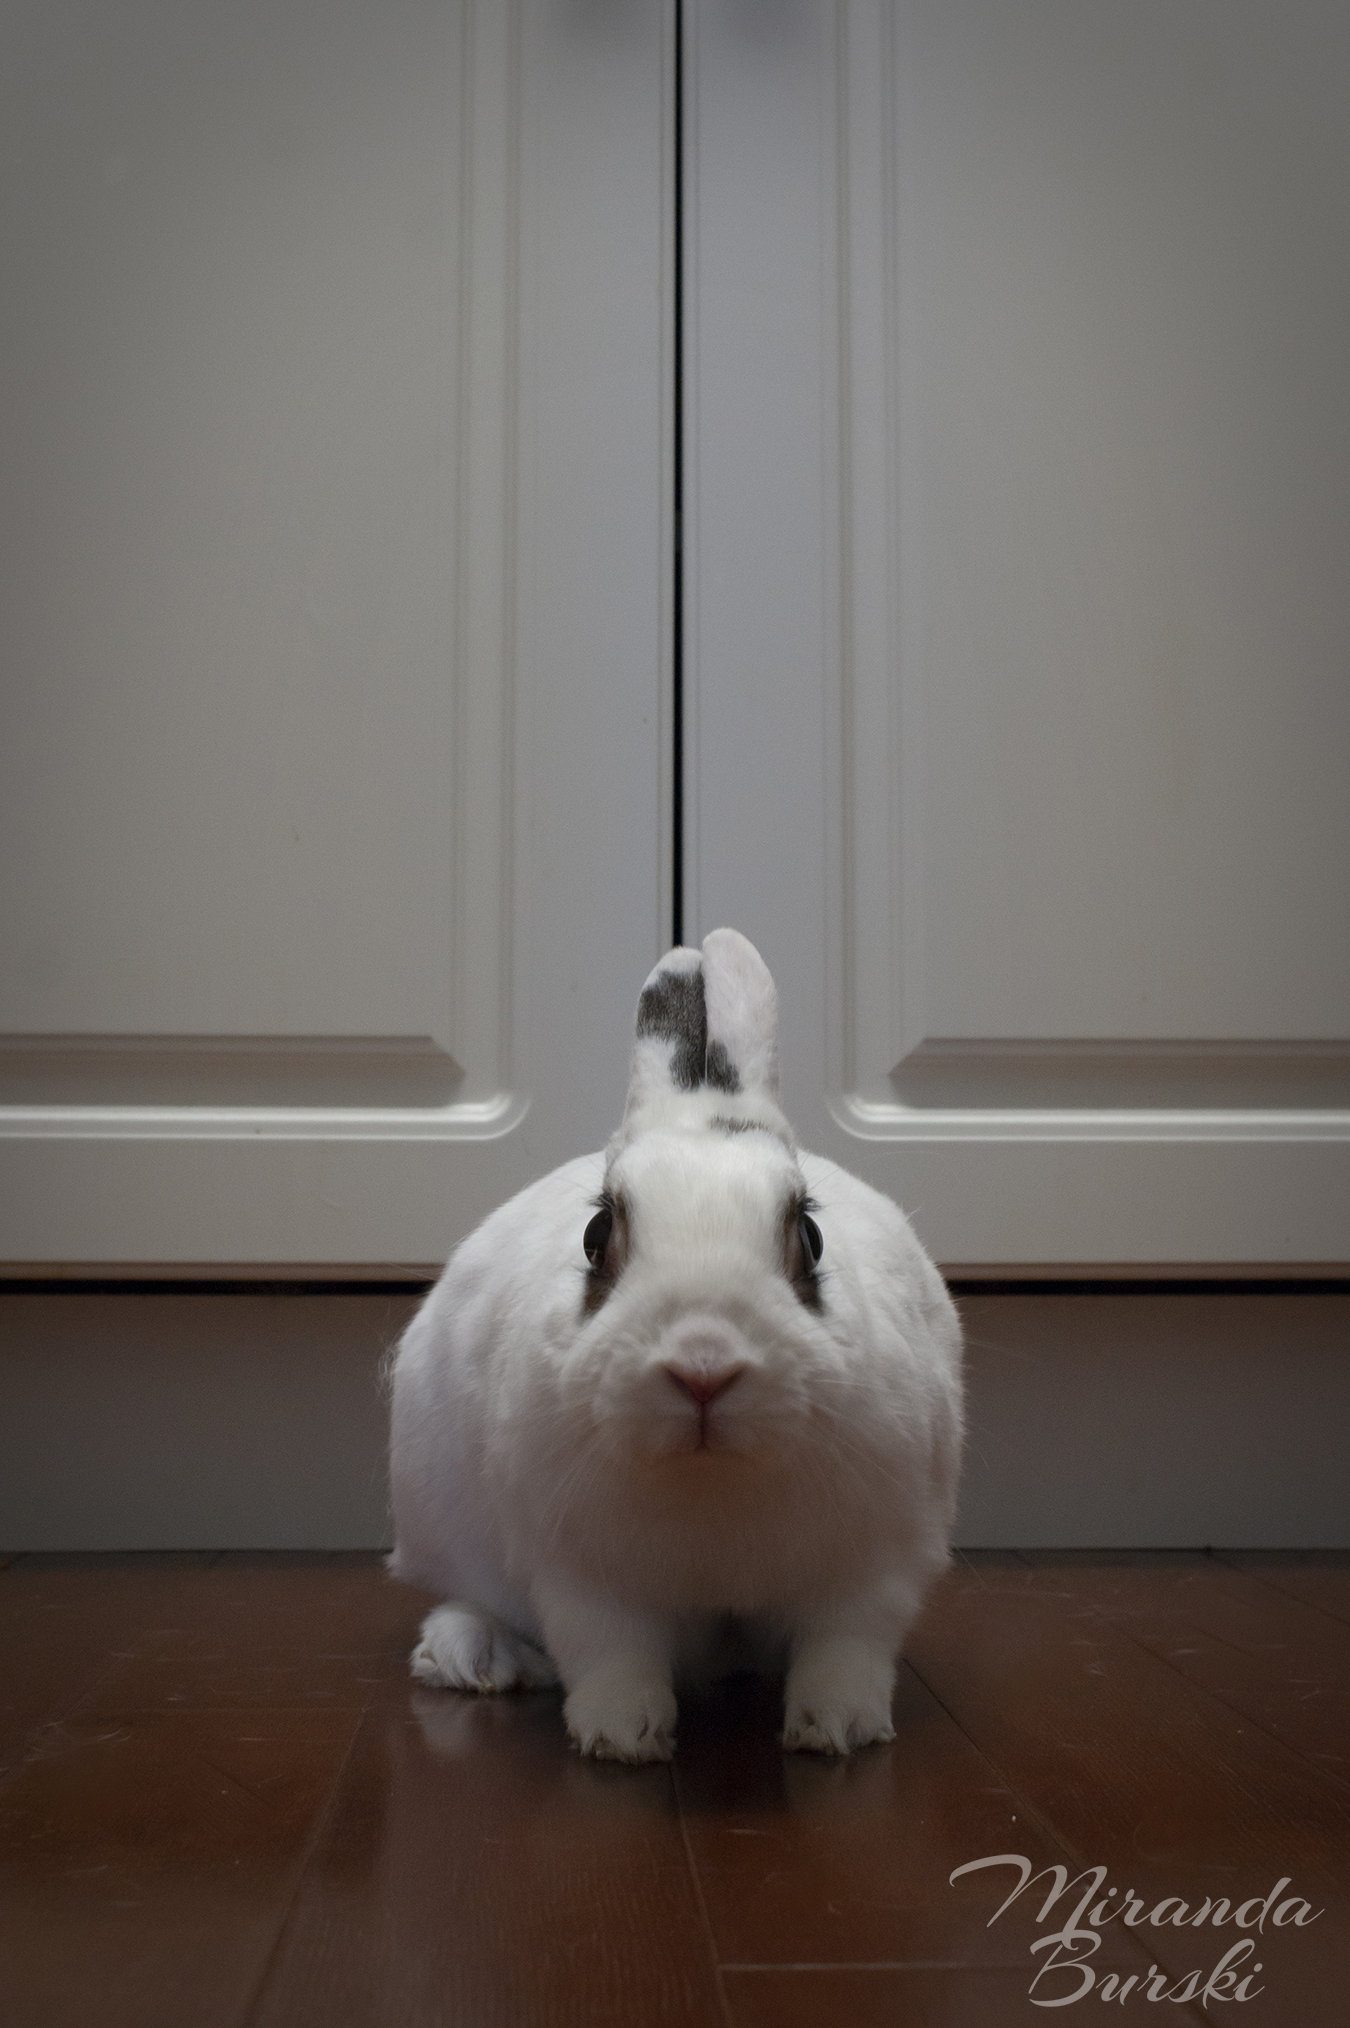 A white and black rabbit in front of cuboards.